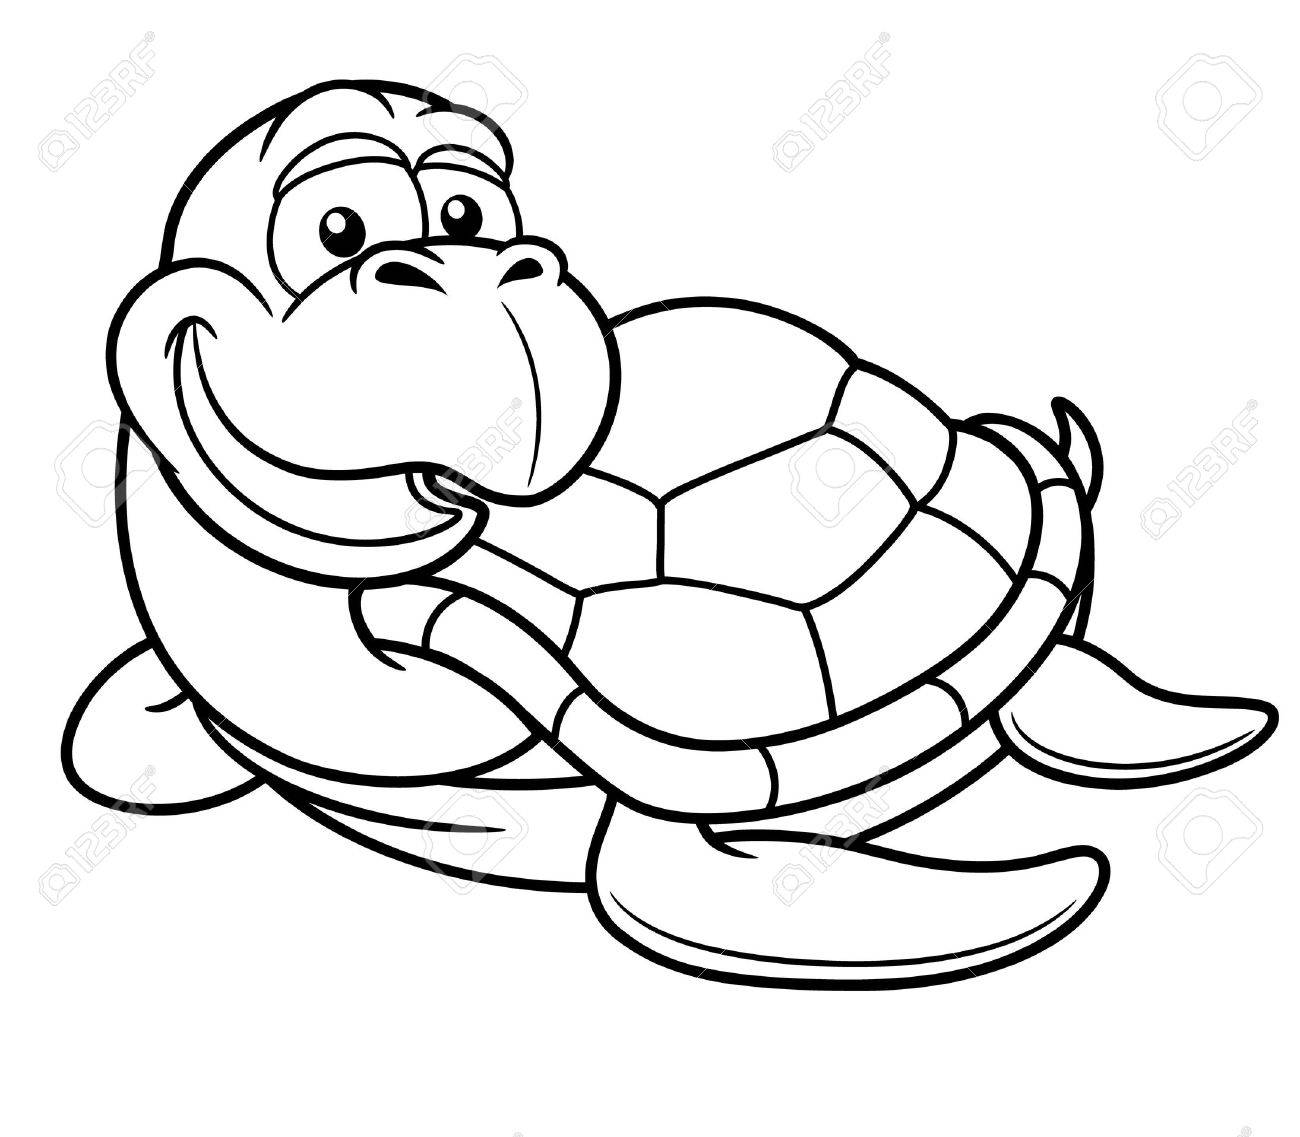 Vector Illustration Of Cartoon Turtle Coloring Book Royalty Free